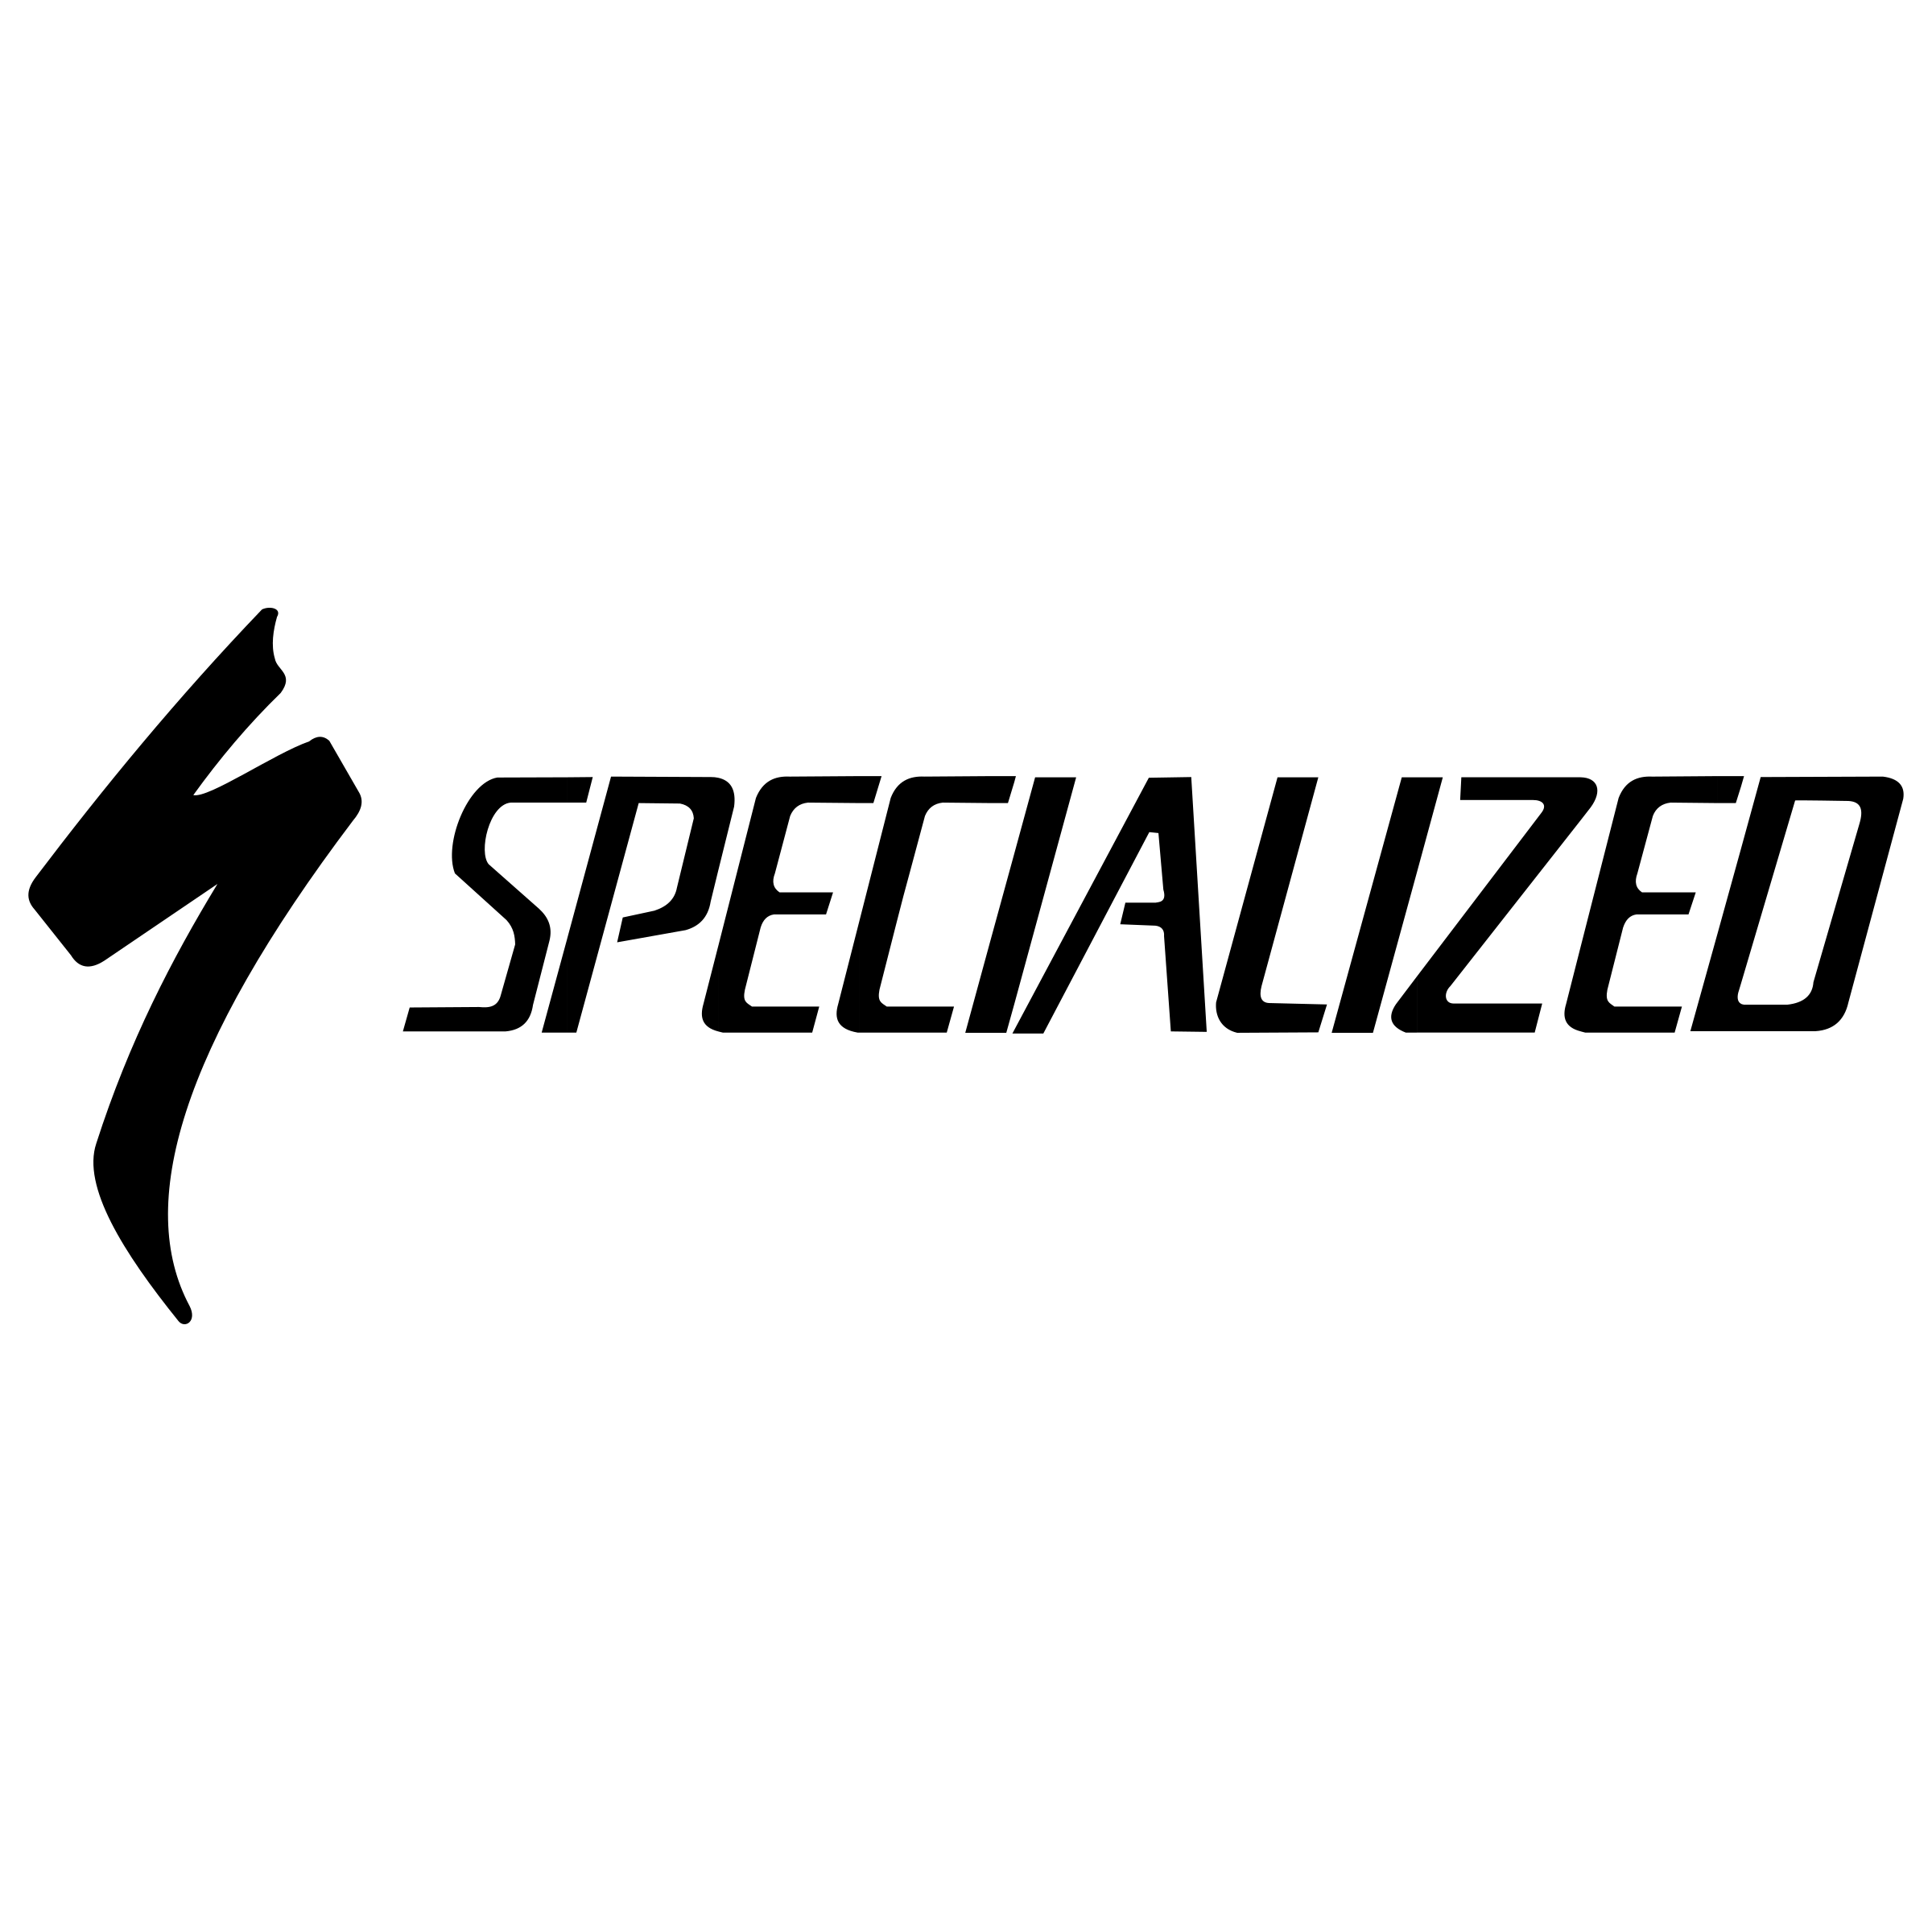 specialized-logo-png-transparent.png